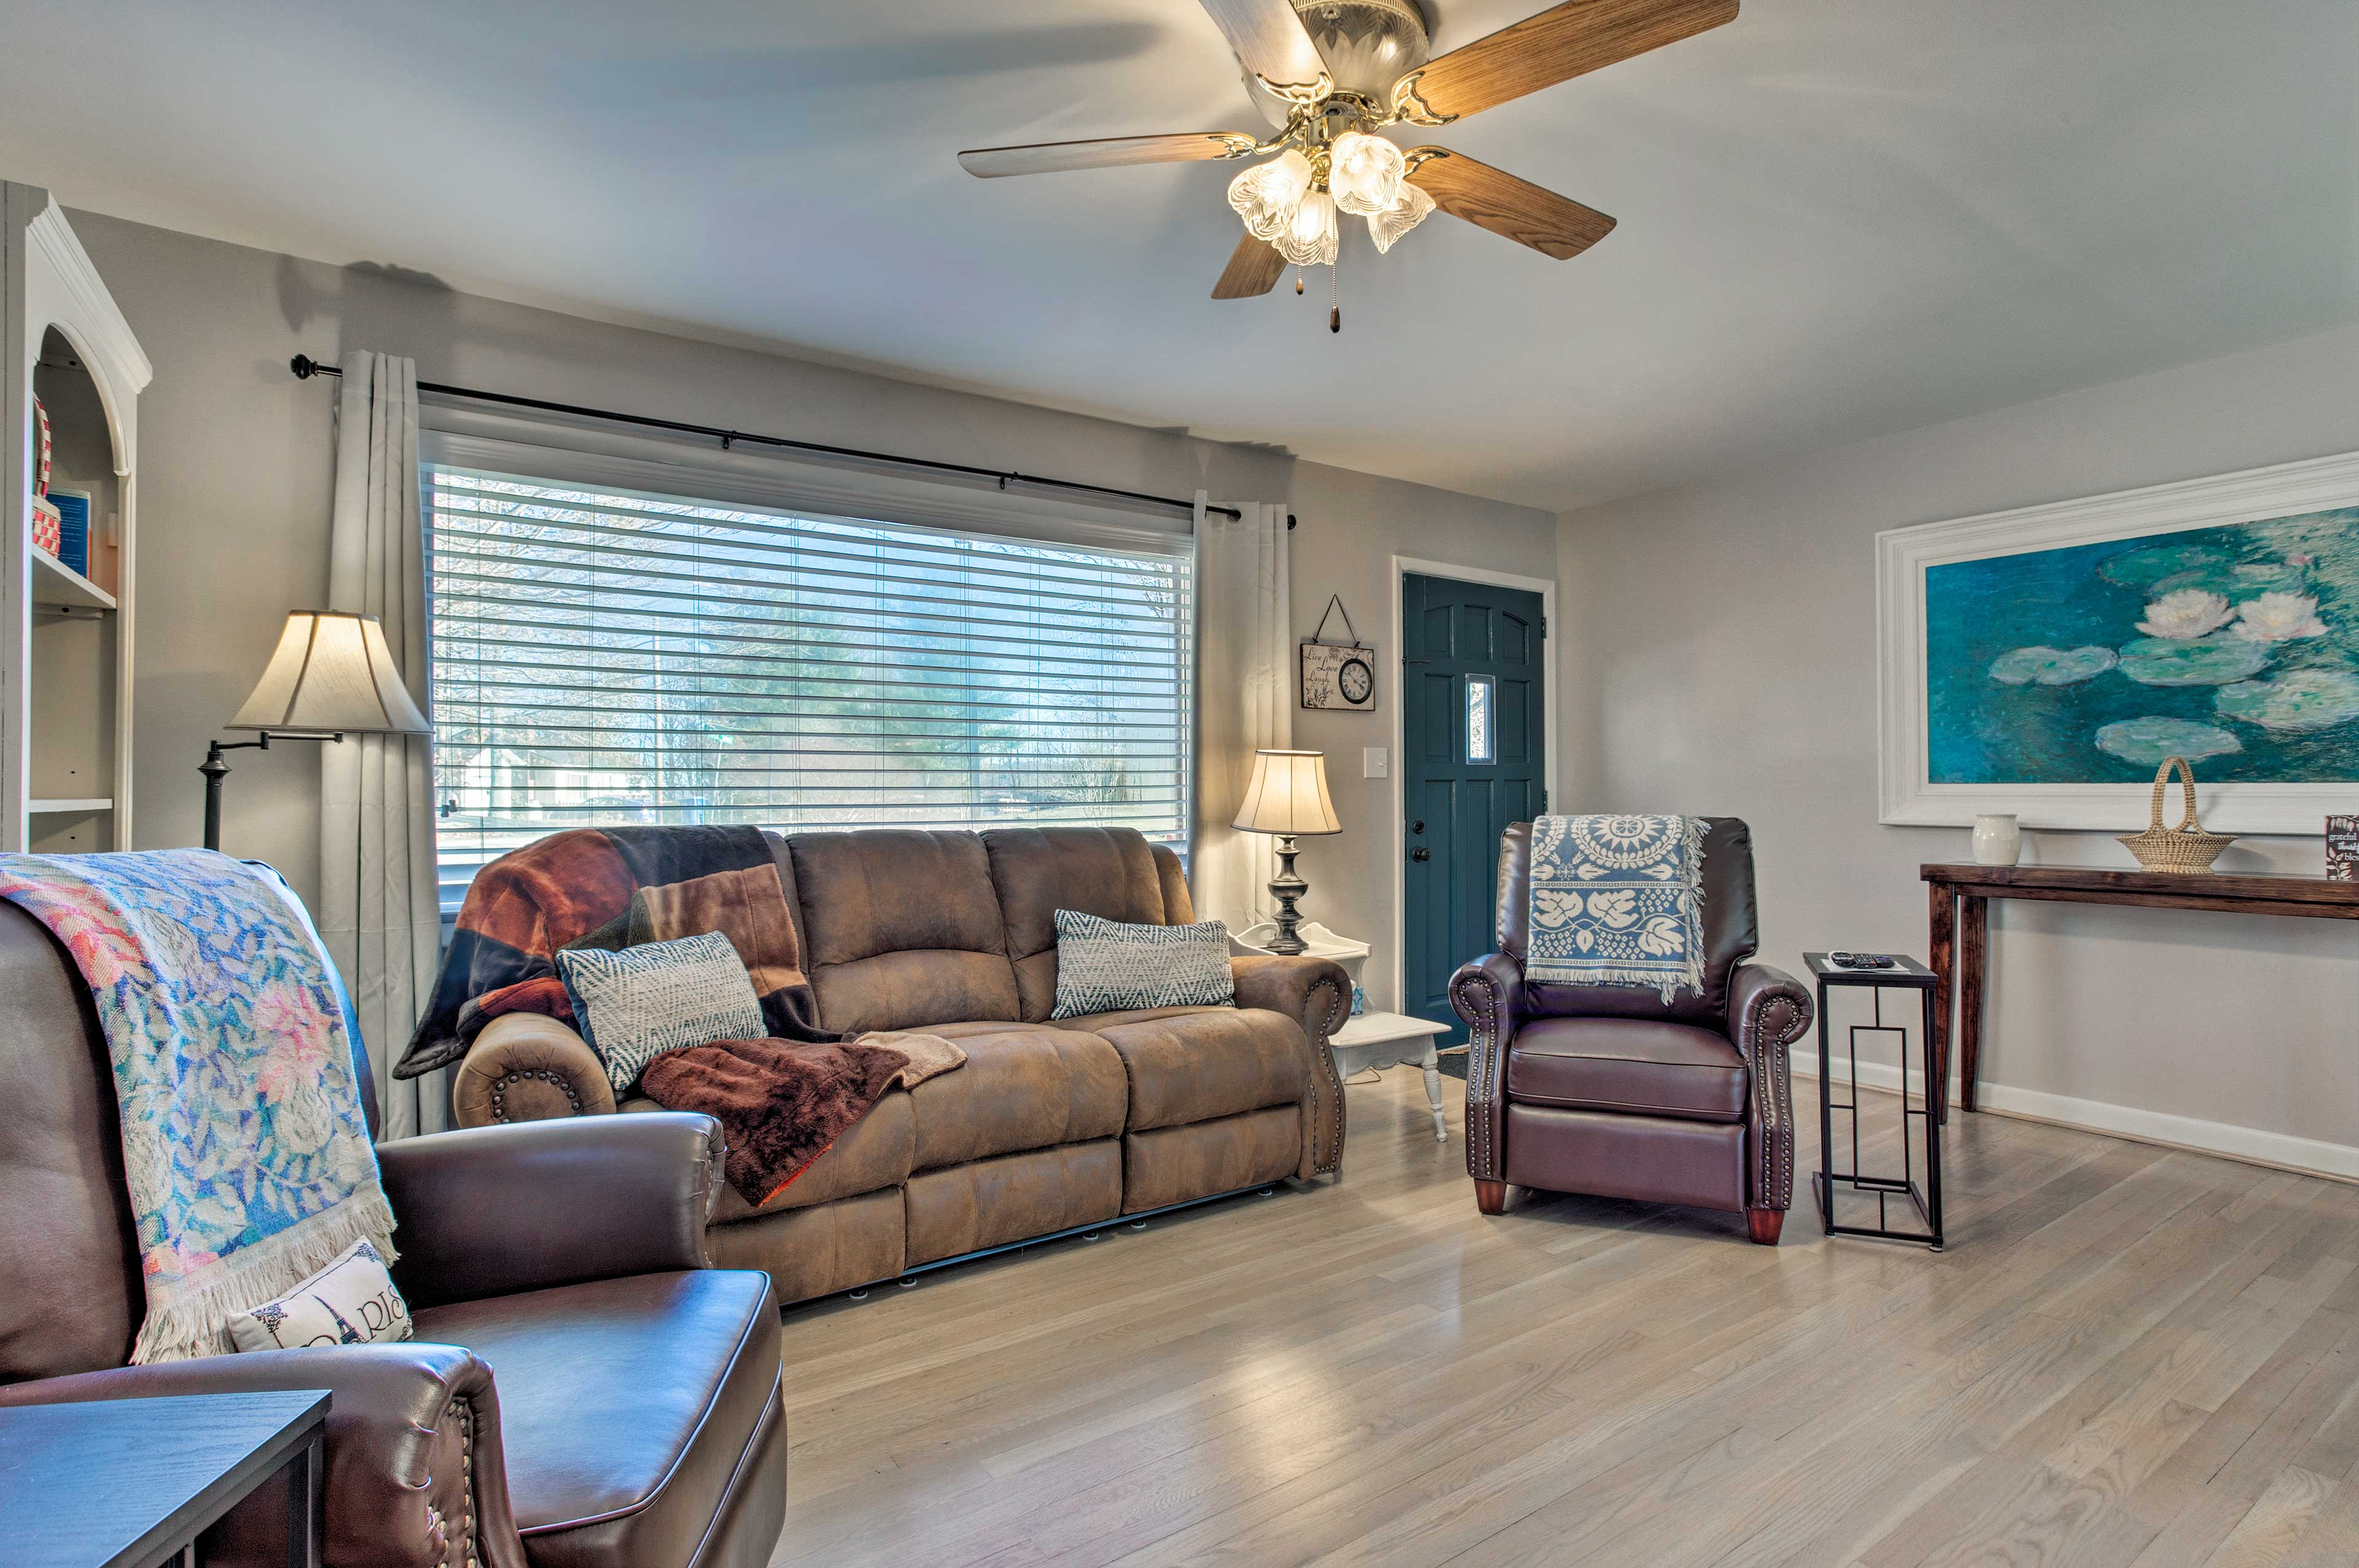 Sprawl out on the soft sofa or claim one of 2 recliners.